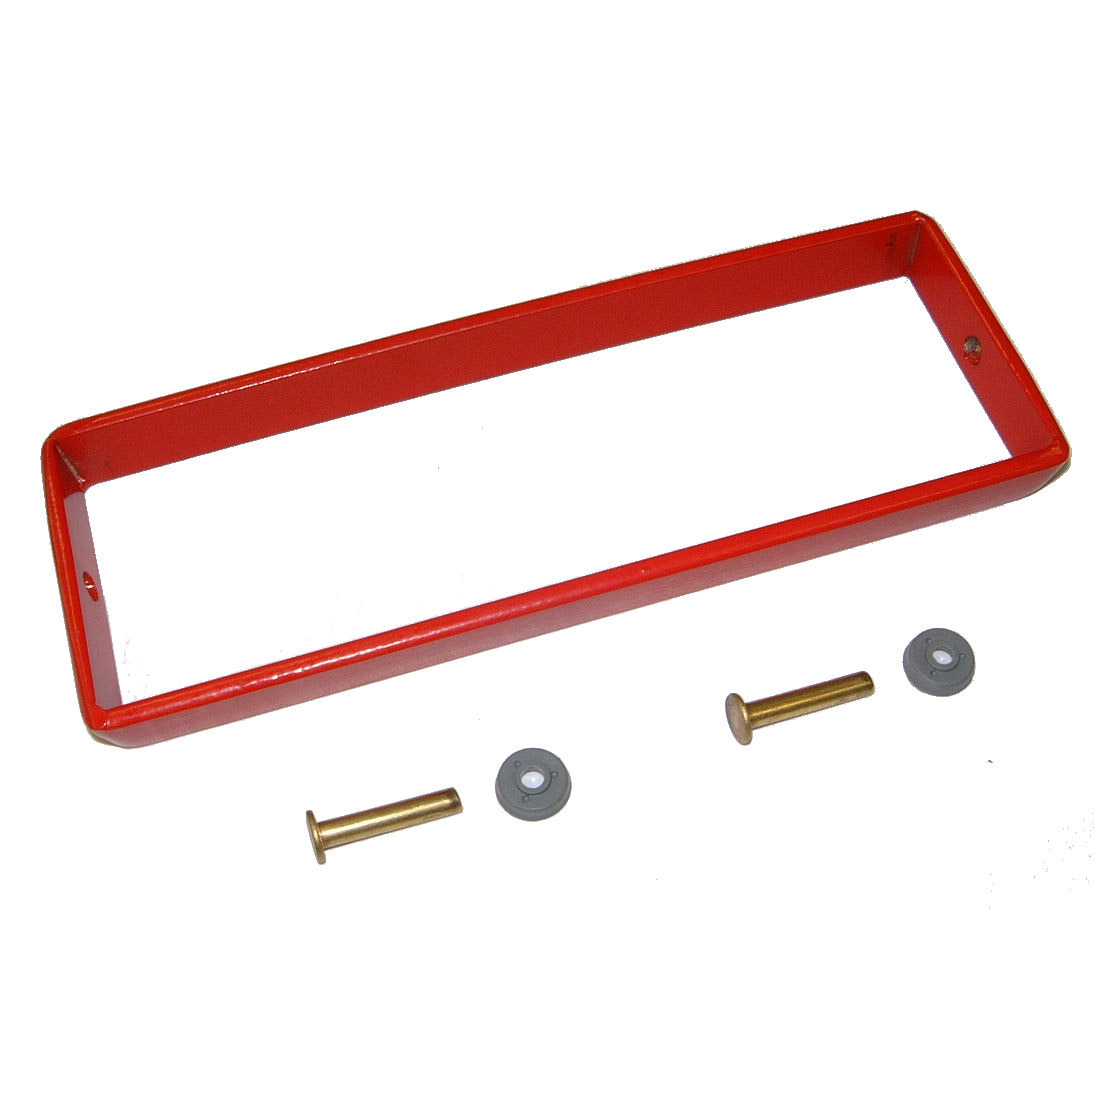 K6 SMALL STEEL GLAZING FRAME KIT X 1